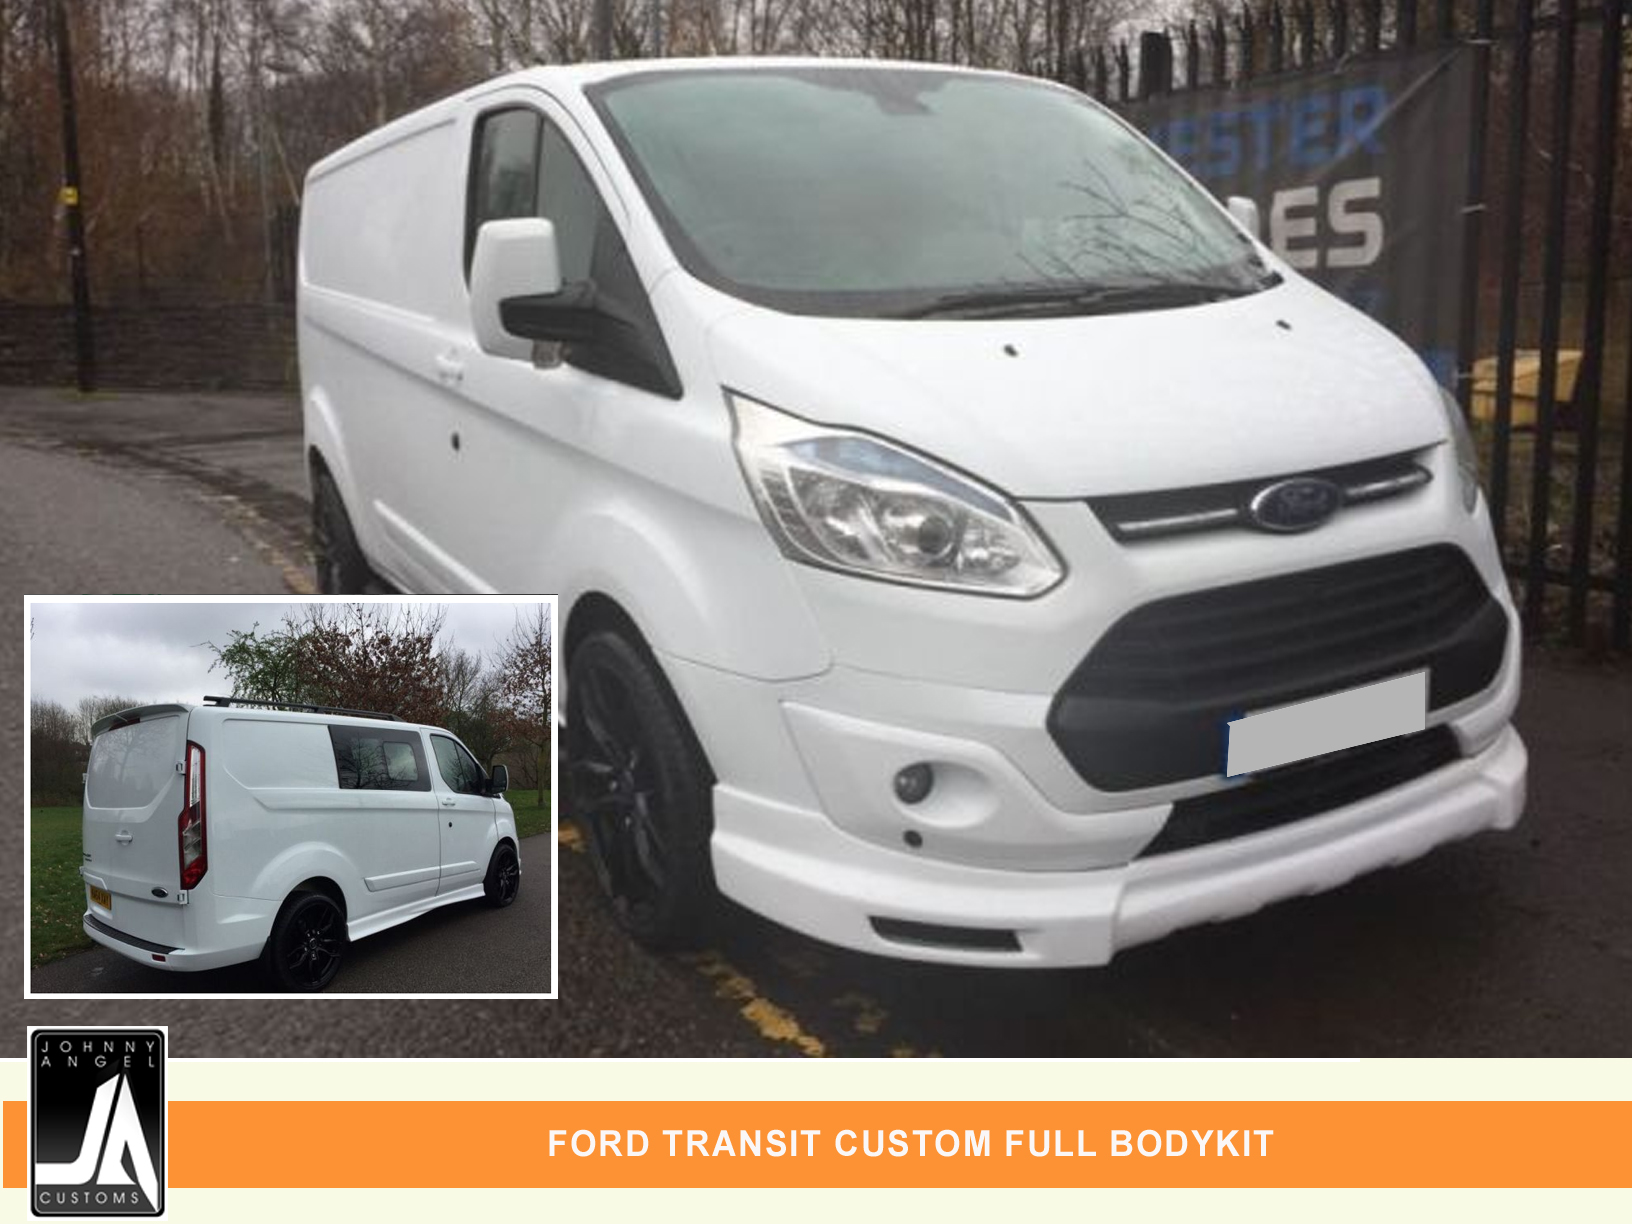 FORD TRANSIT CUSTOM FULL BODYKIT  By Johnny Angel Customs PIC 1